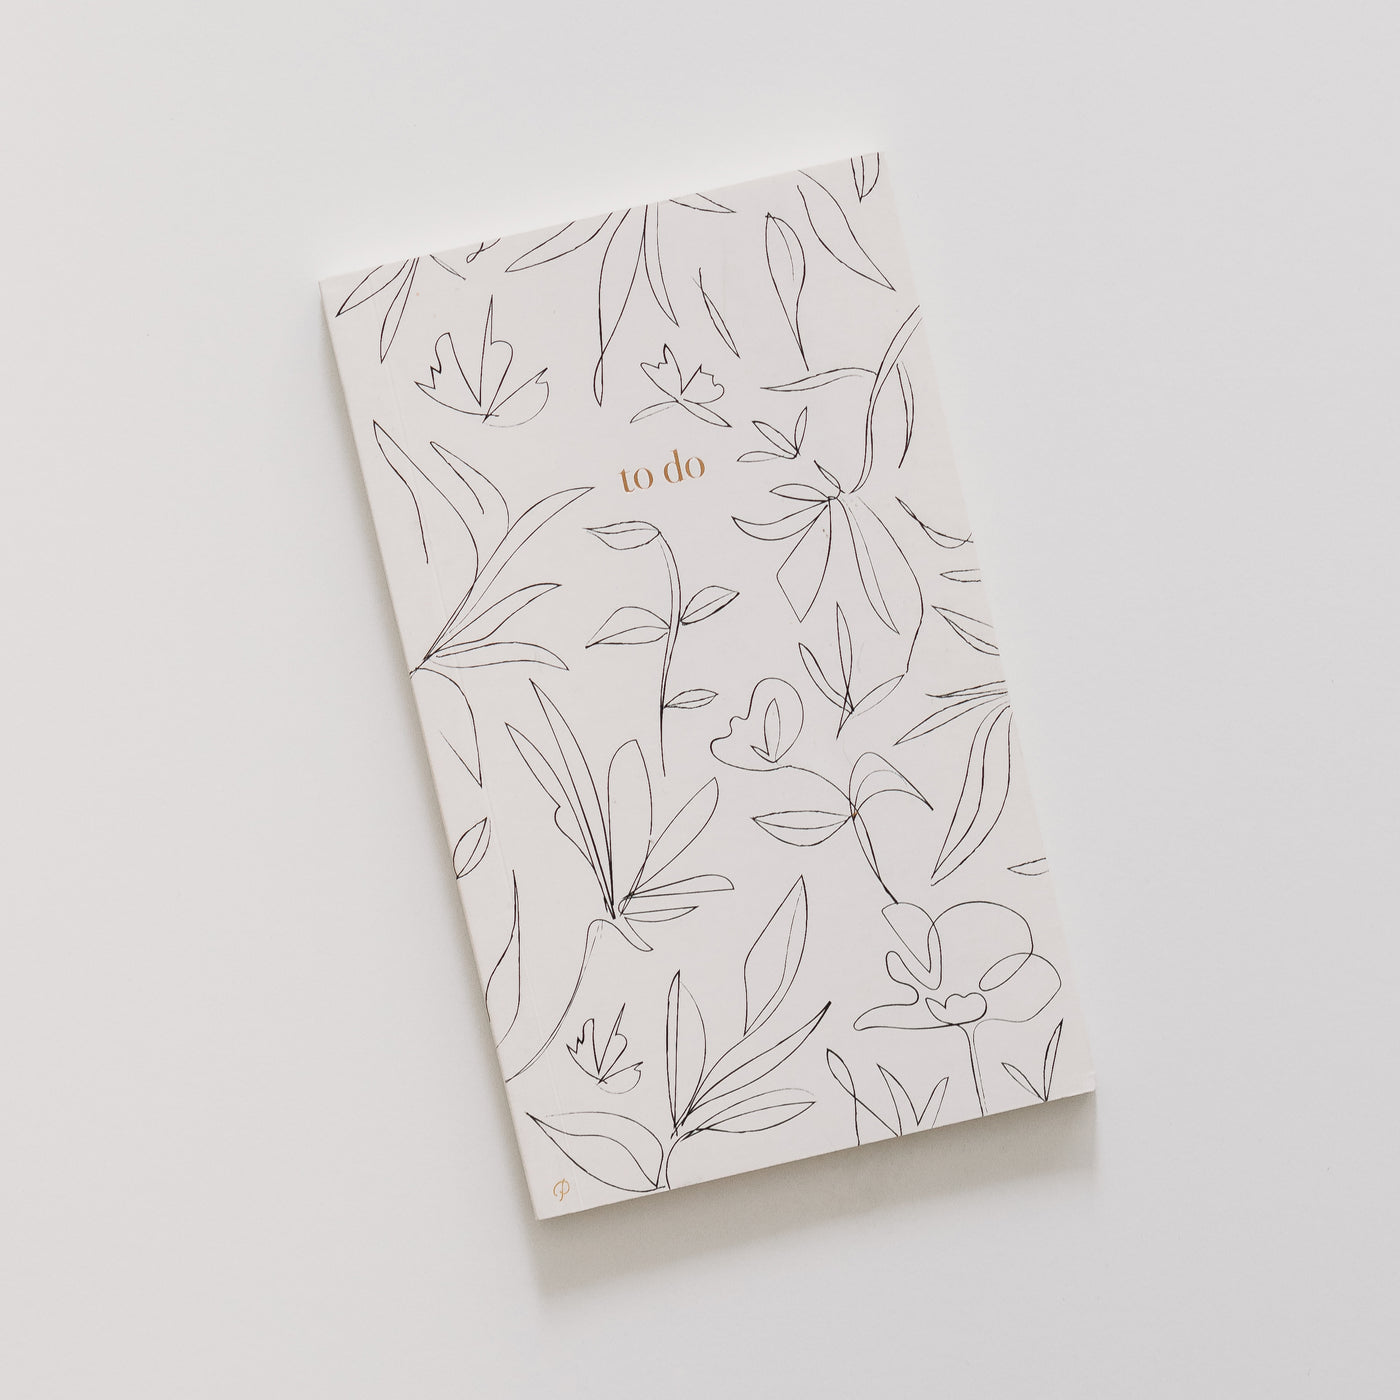 To do floral notebook